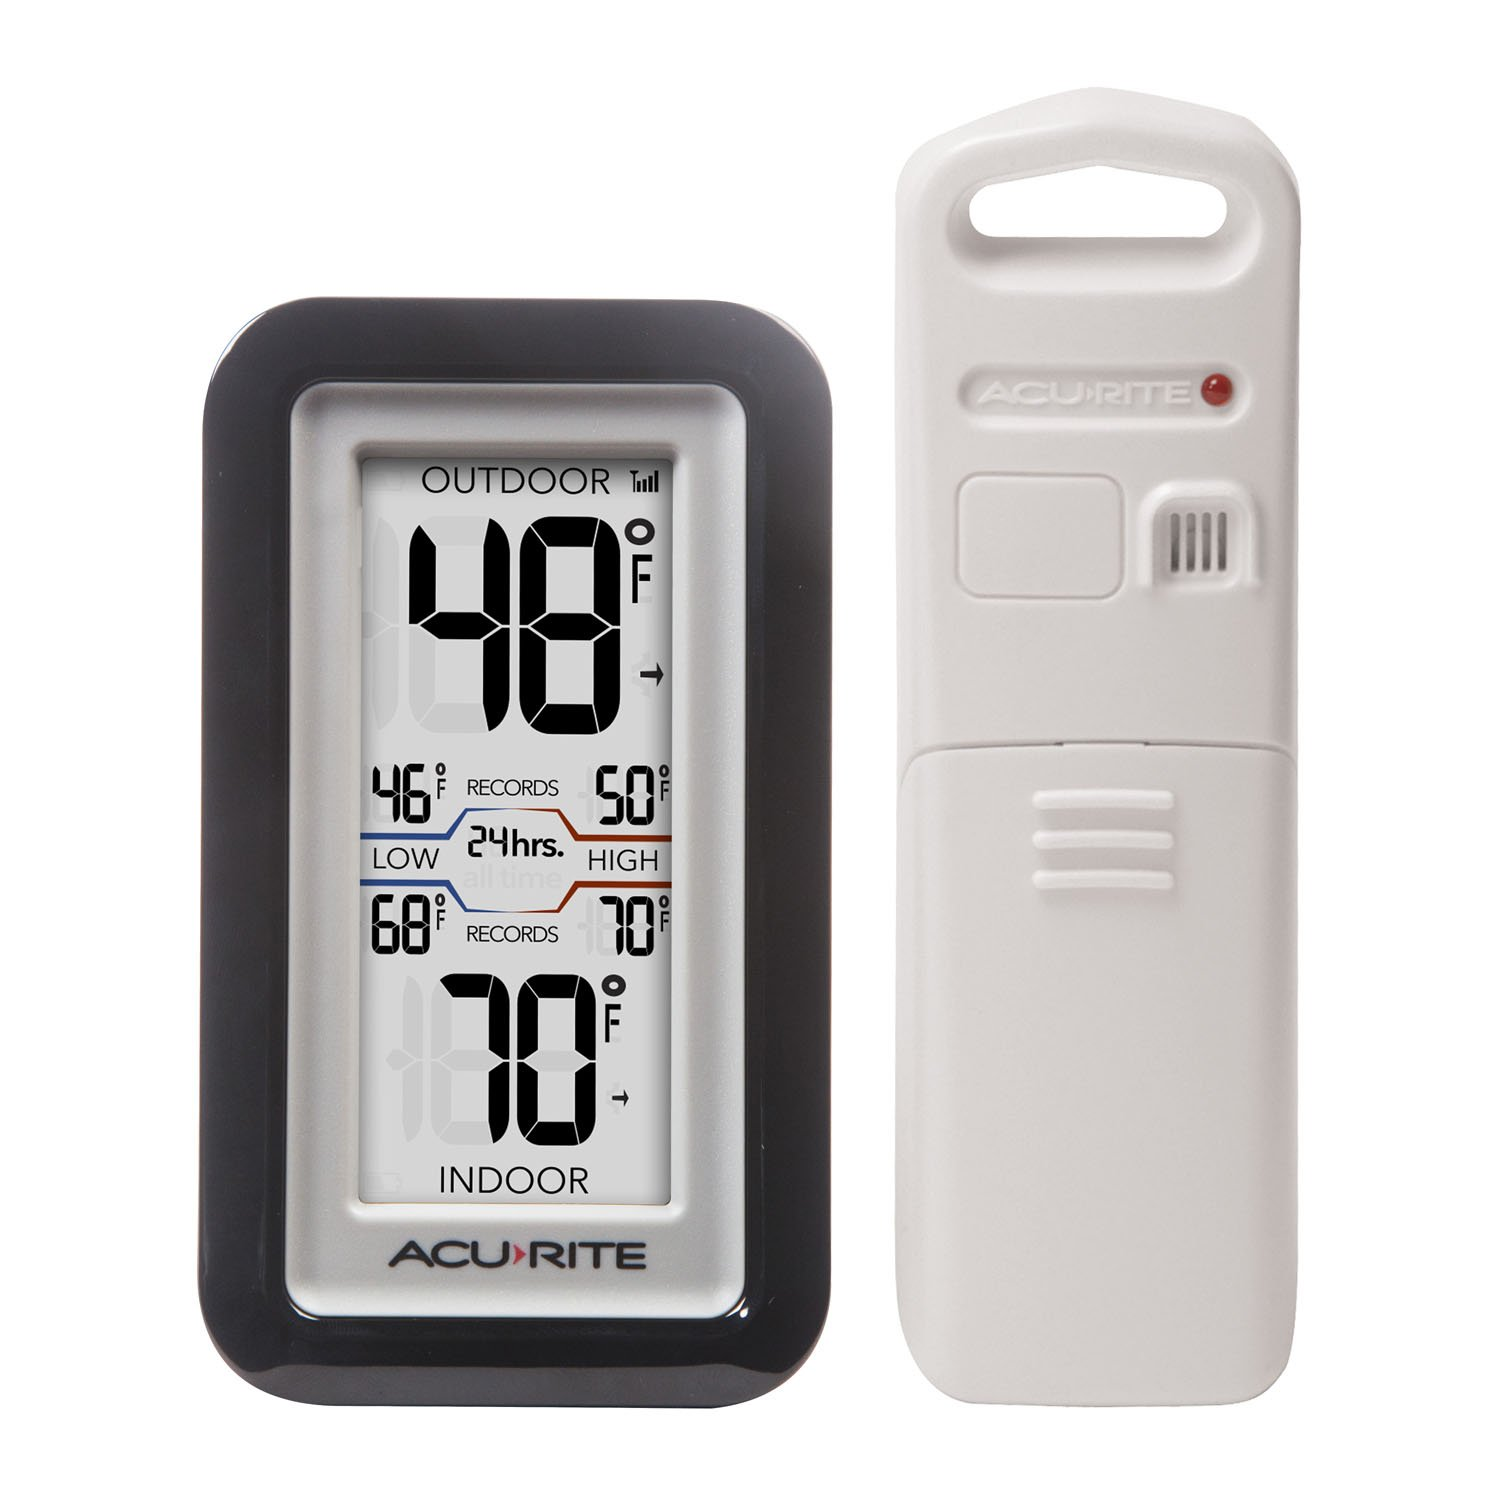 AcuRite 02043 Digital Thermometer with Indoor/Outdoor Temperature